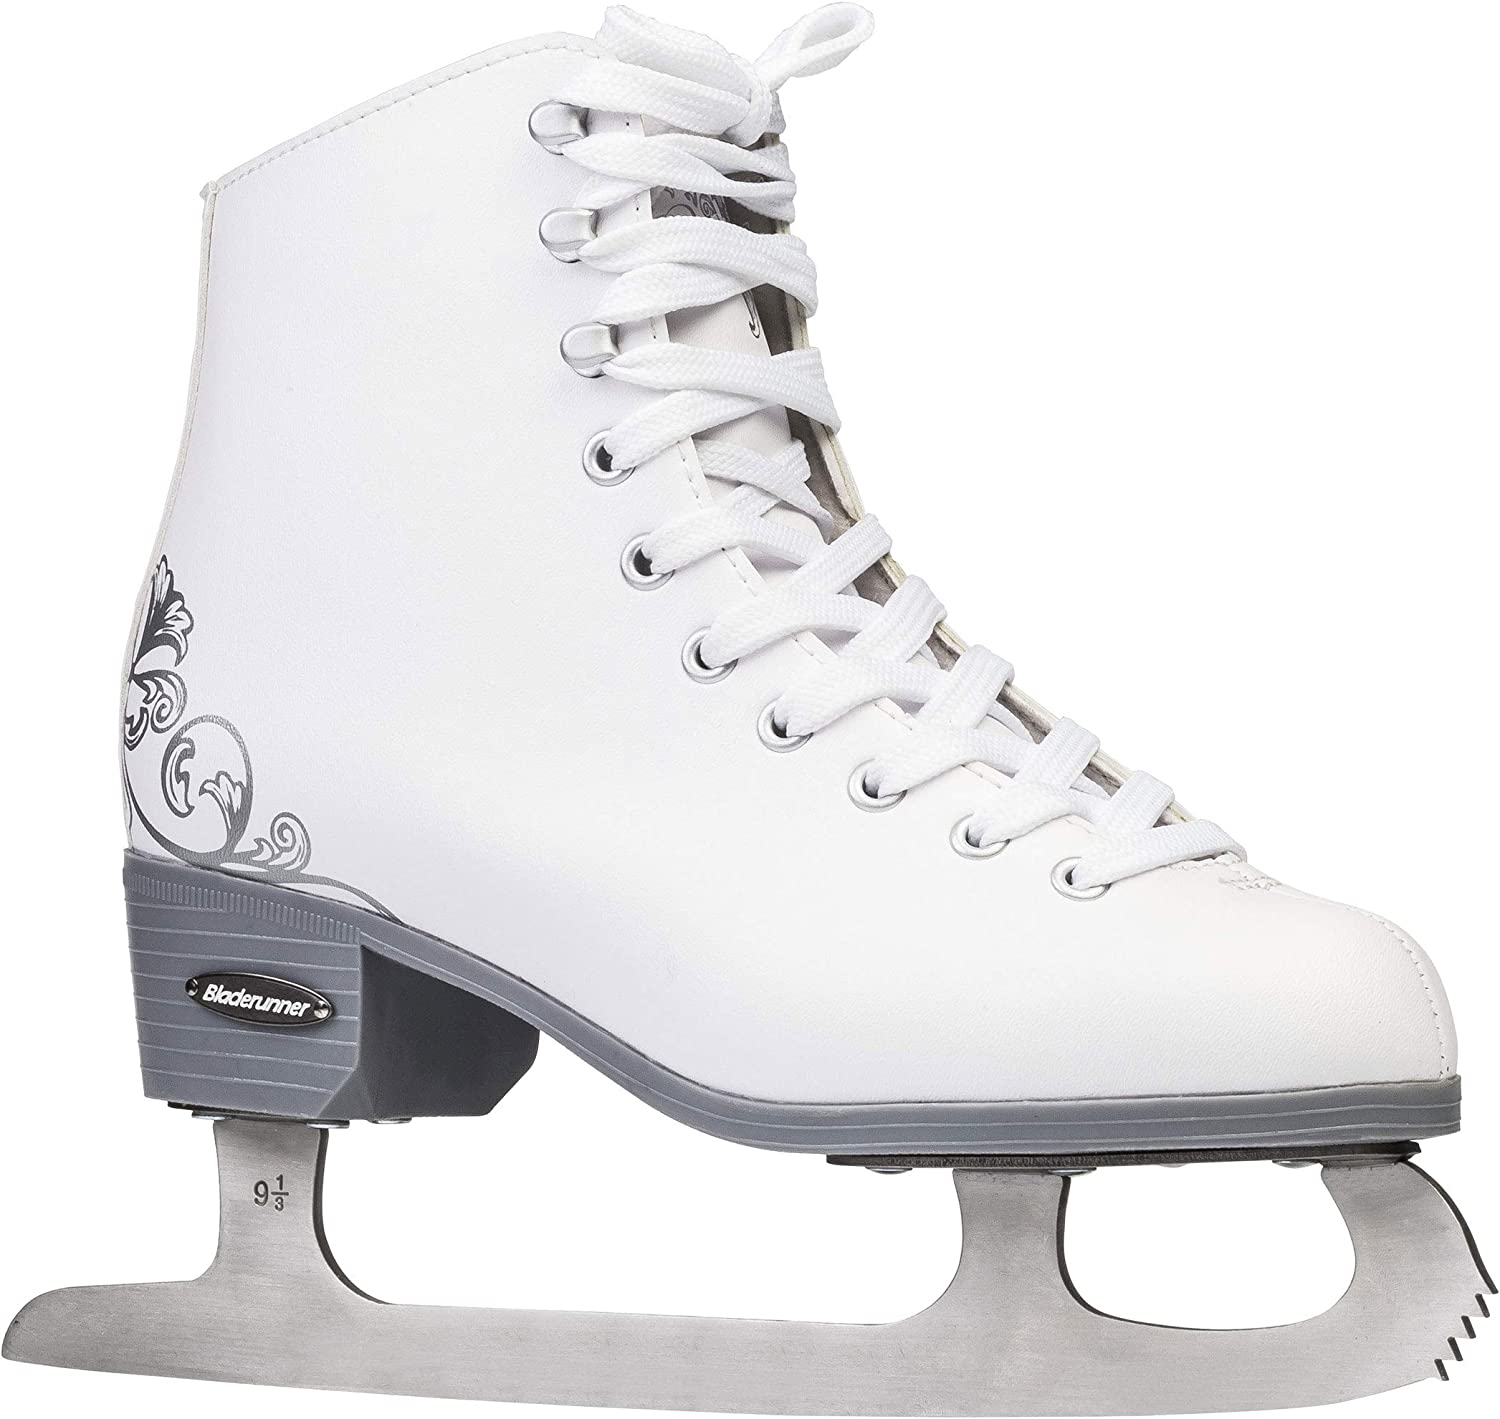 Amazon Com Rollerblade Bladerunner Ice Allure Girls Figure Skate White Ice Skates Sports Outdoors